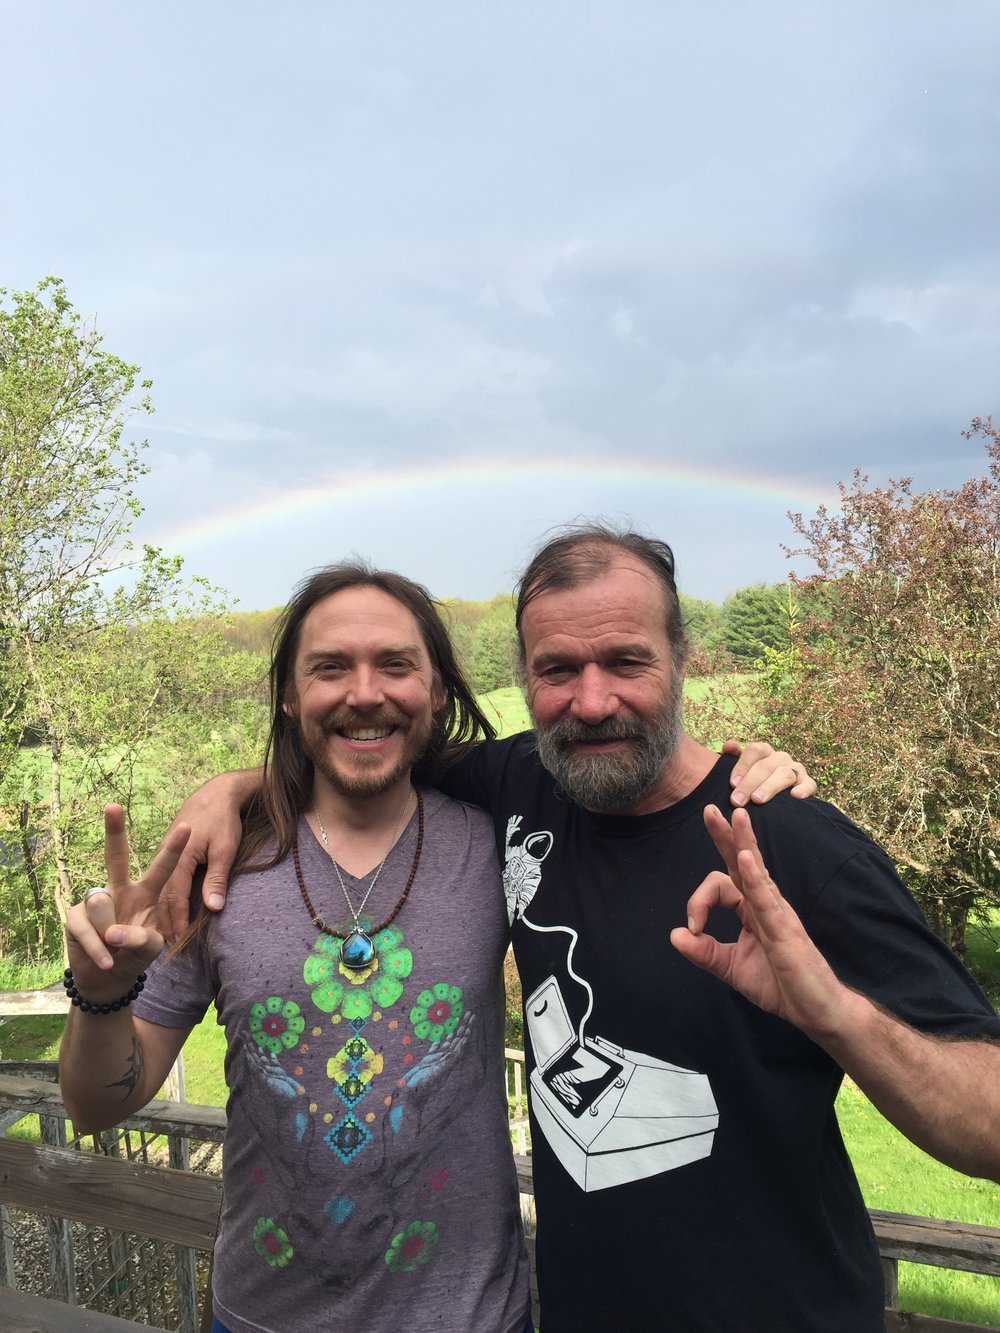 Darren and Wim Hof/the Iceman -